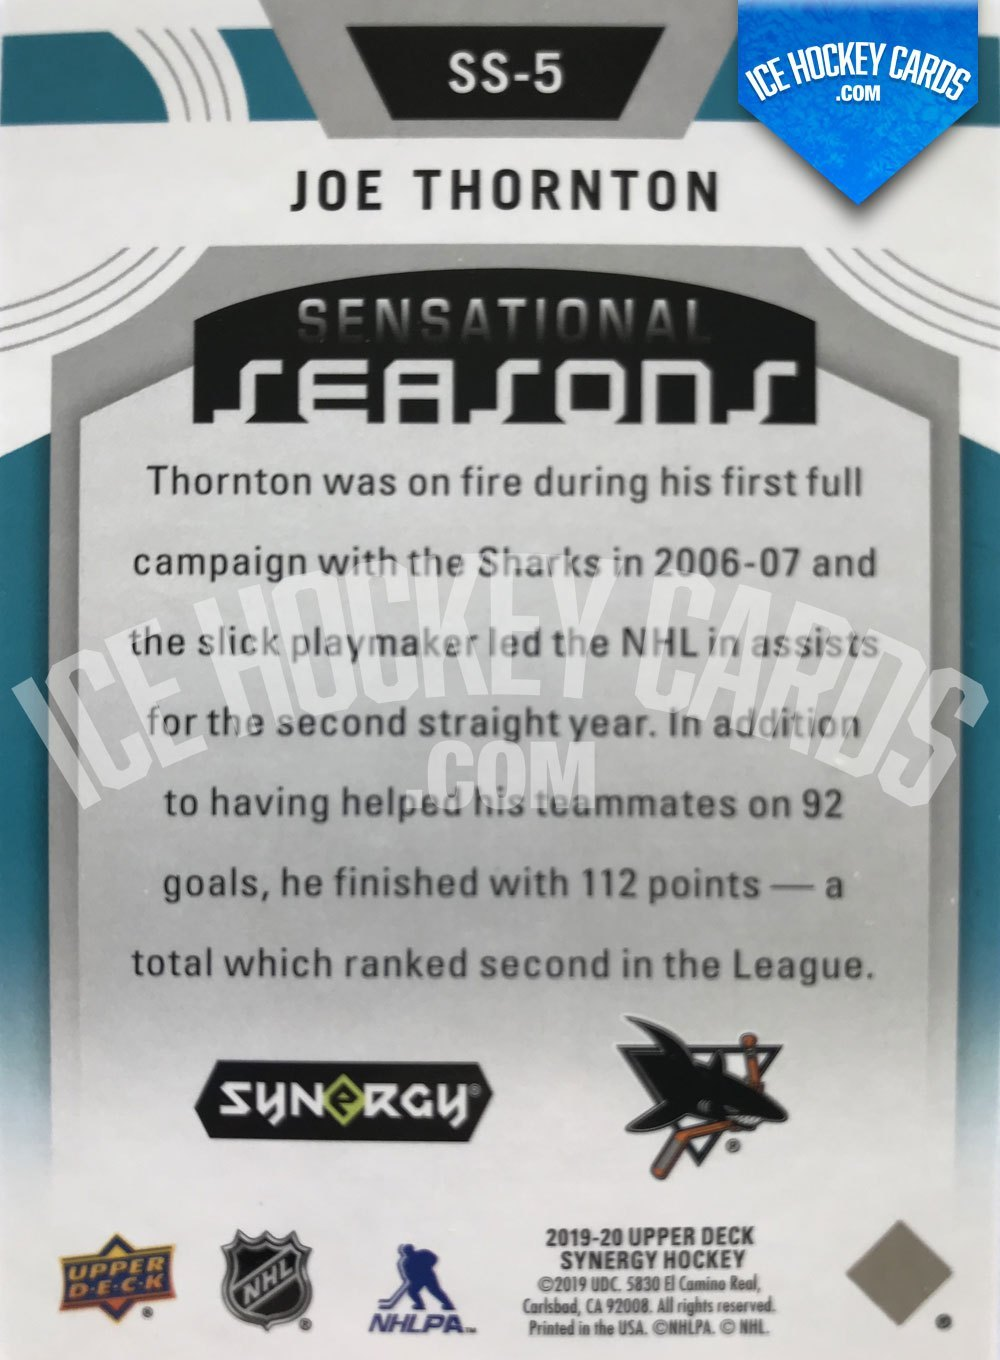 Upper Deck - Synergy 19-20 - Joe Thornton Sensational Seasons 2006-07 back